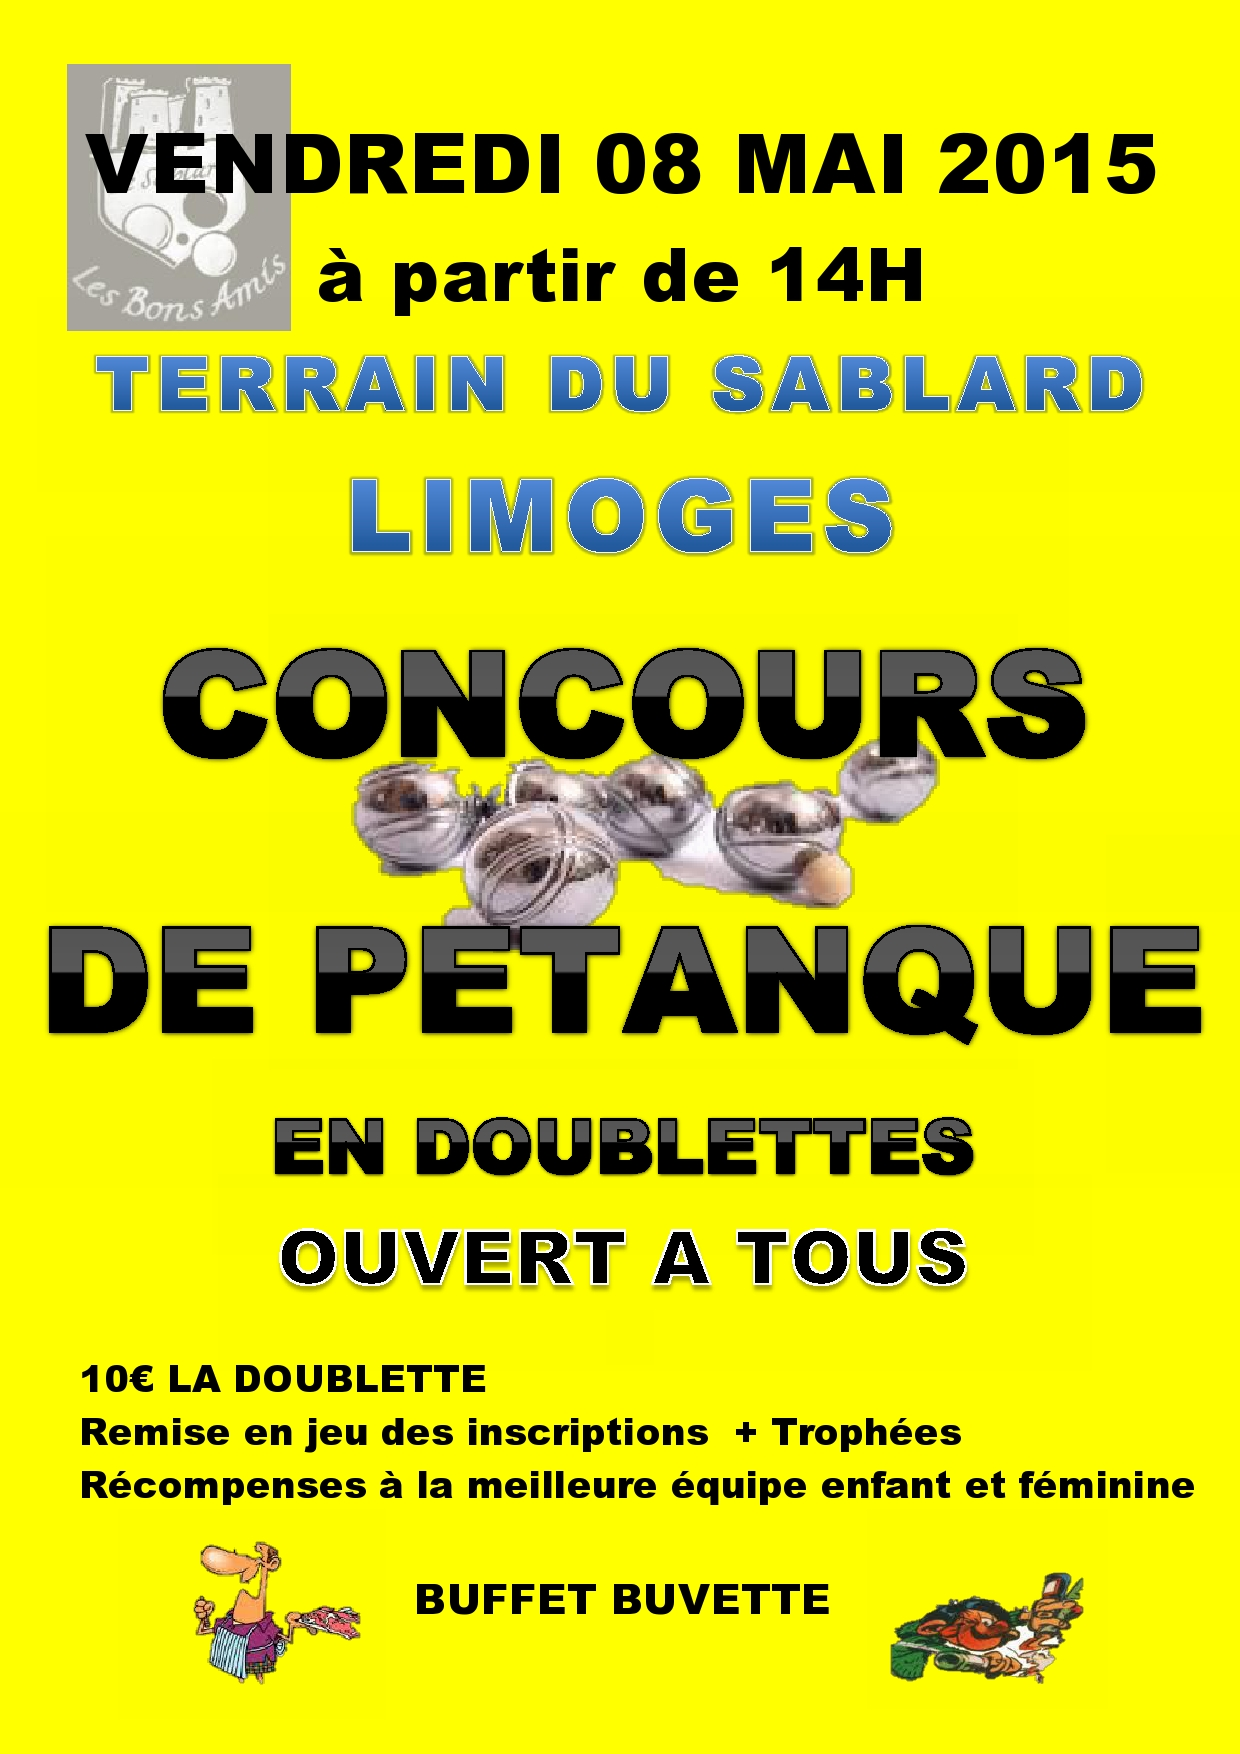 job dating limoges 24 mai